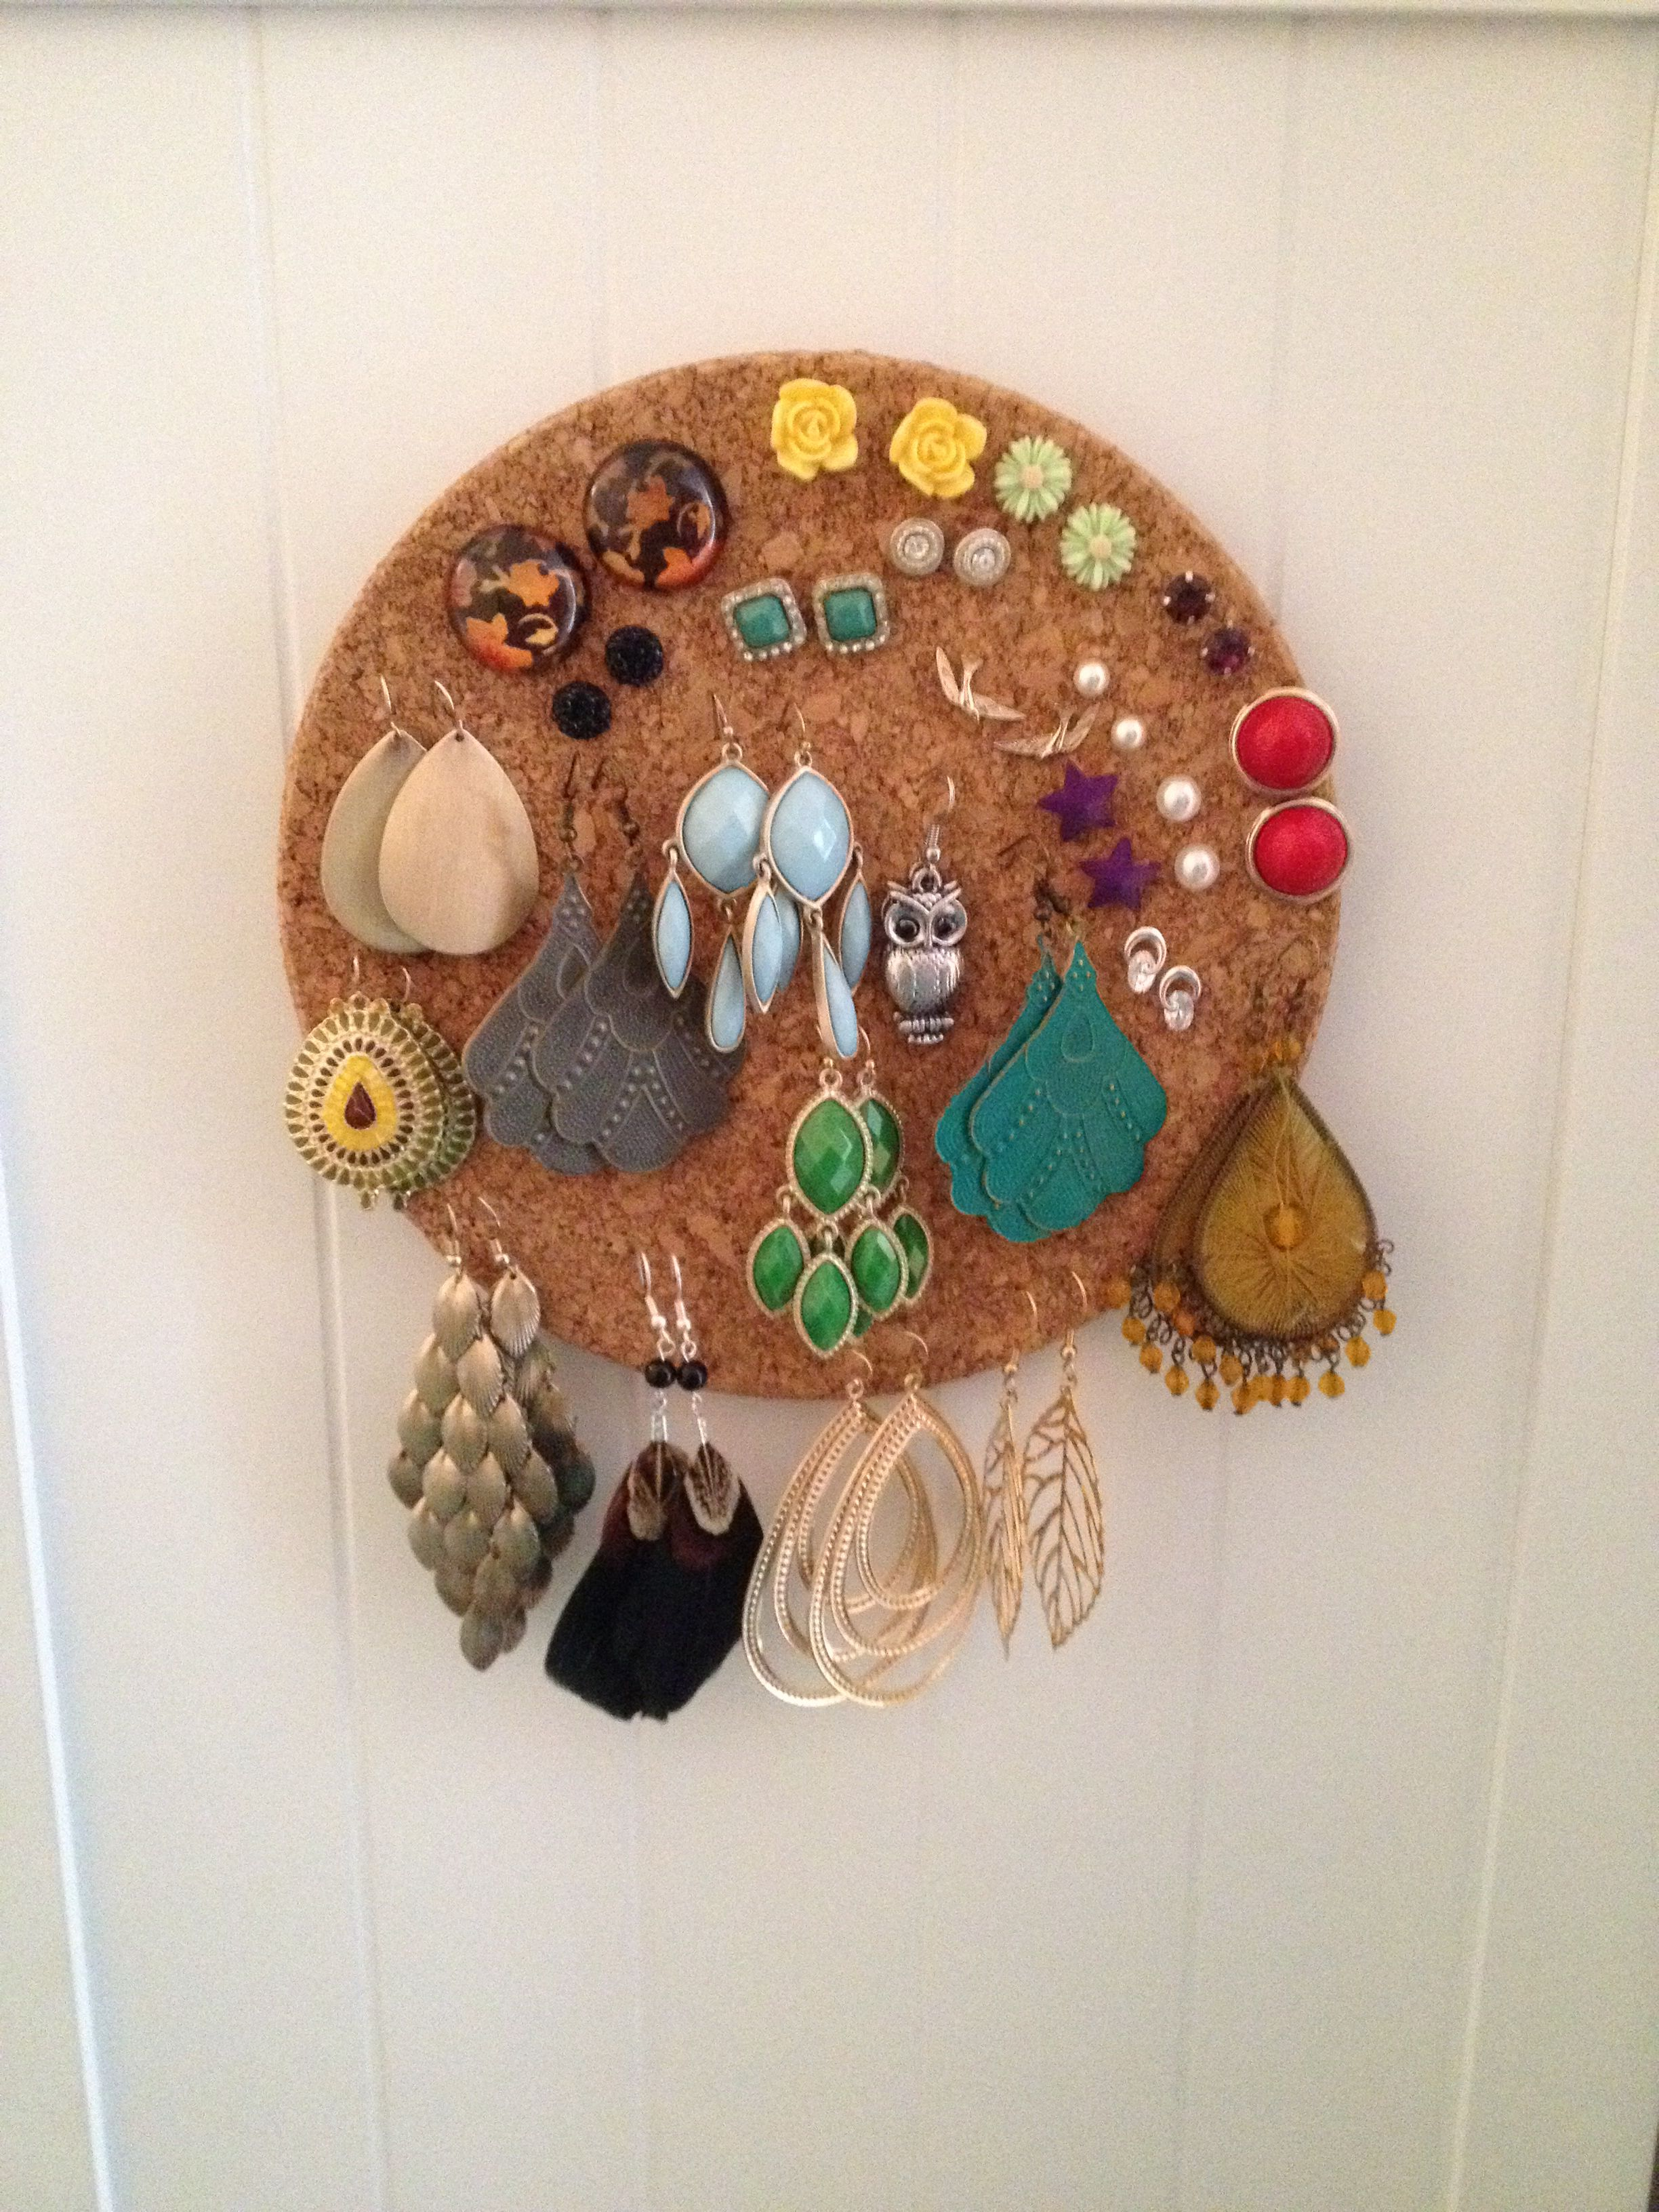 Used a cork hot pad from ikea to hold and display all my earrings Attached it to the side of my bathroom cabinet Helps me remember all the earrings I have